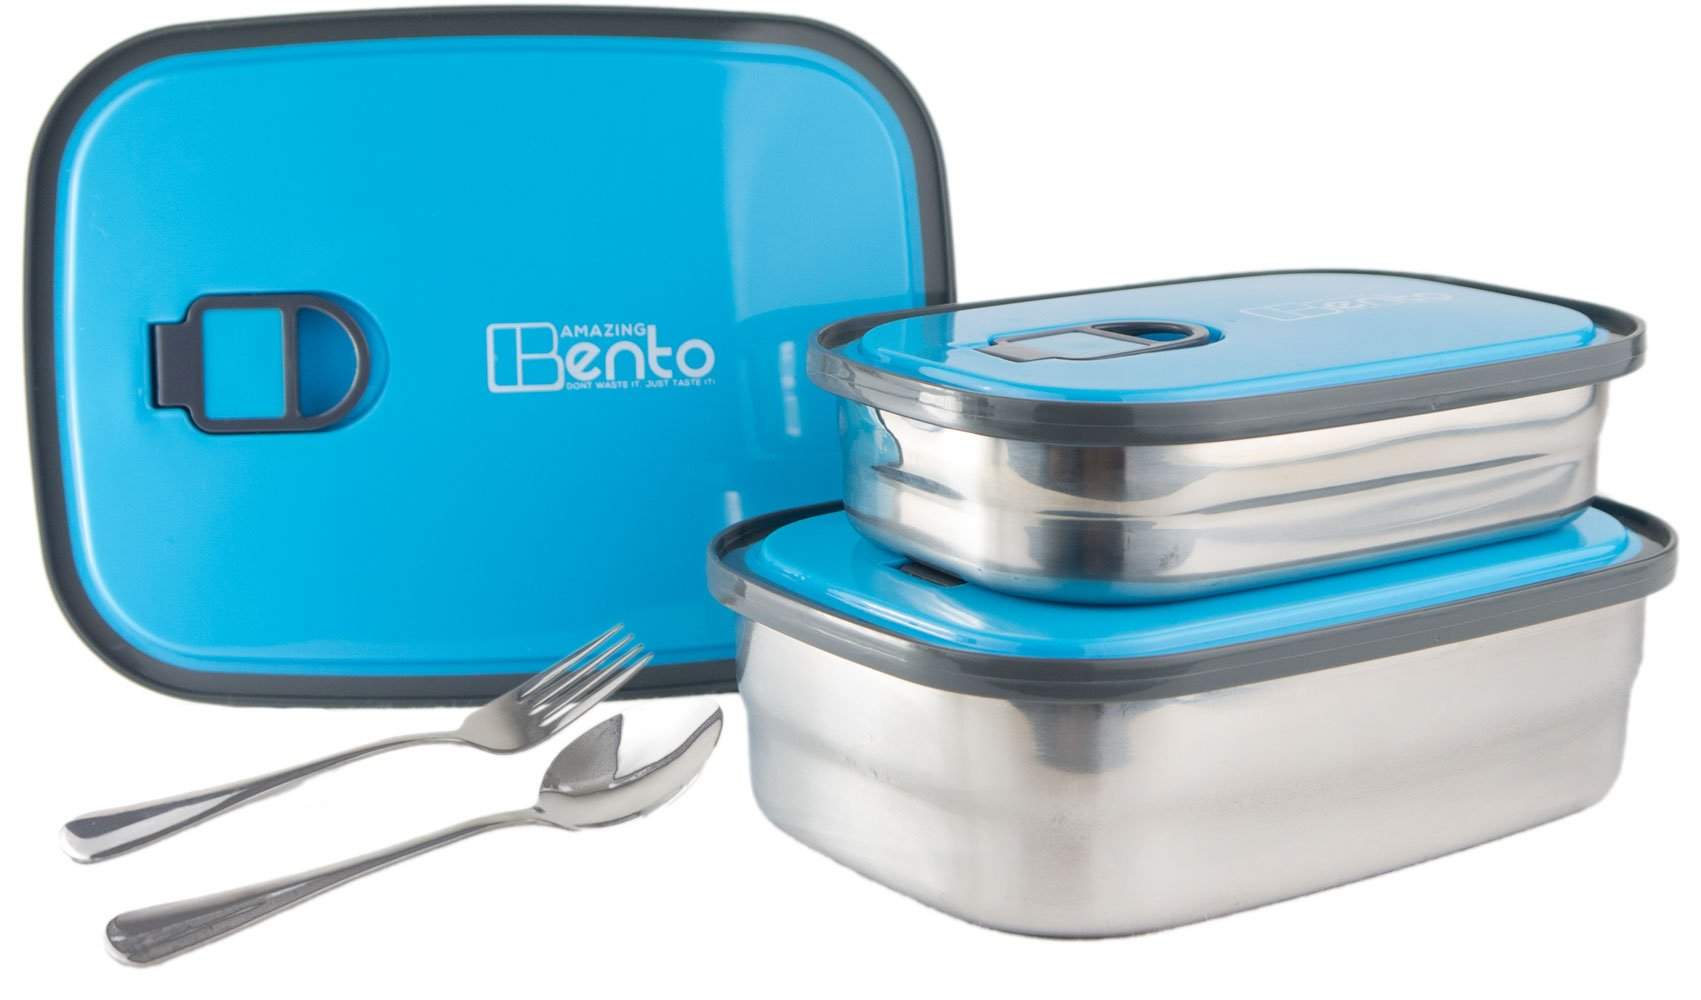 Best Stainless Steel Bento Lunch Box for Kids & Adults, Leak Proof Food Containers, Storage Set 3 in 1 with Lids Includes FREE Cutlery & Recipes E-book